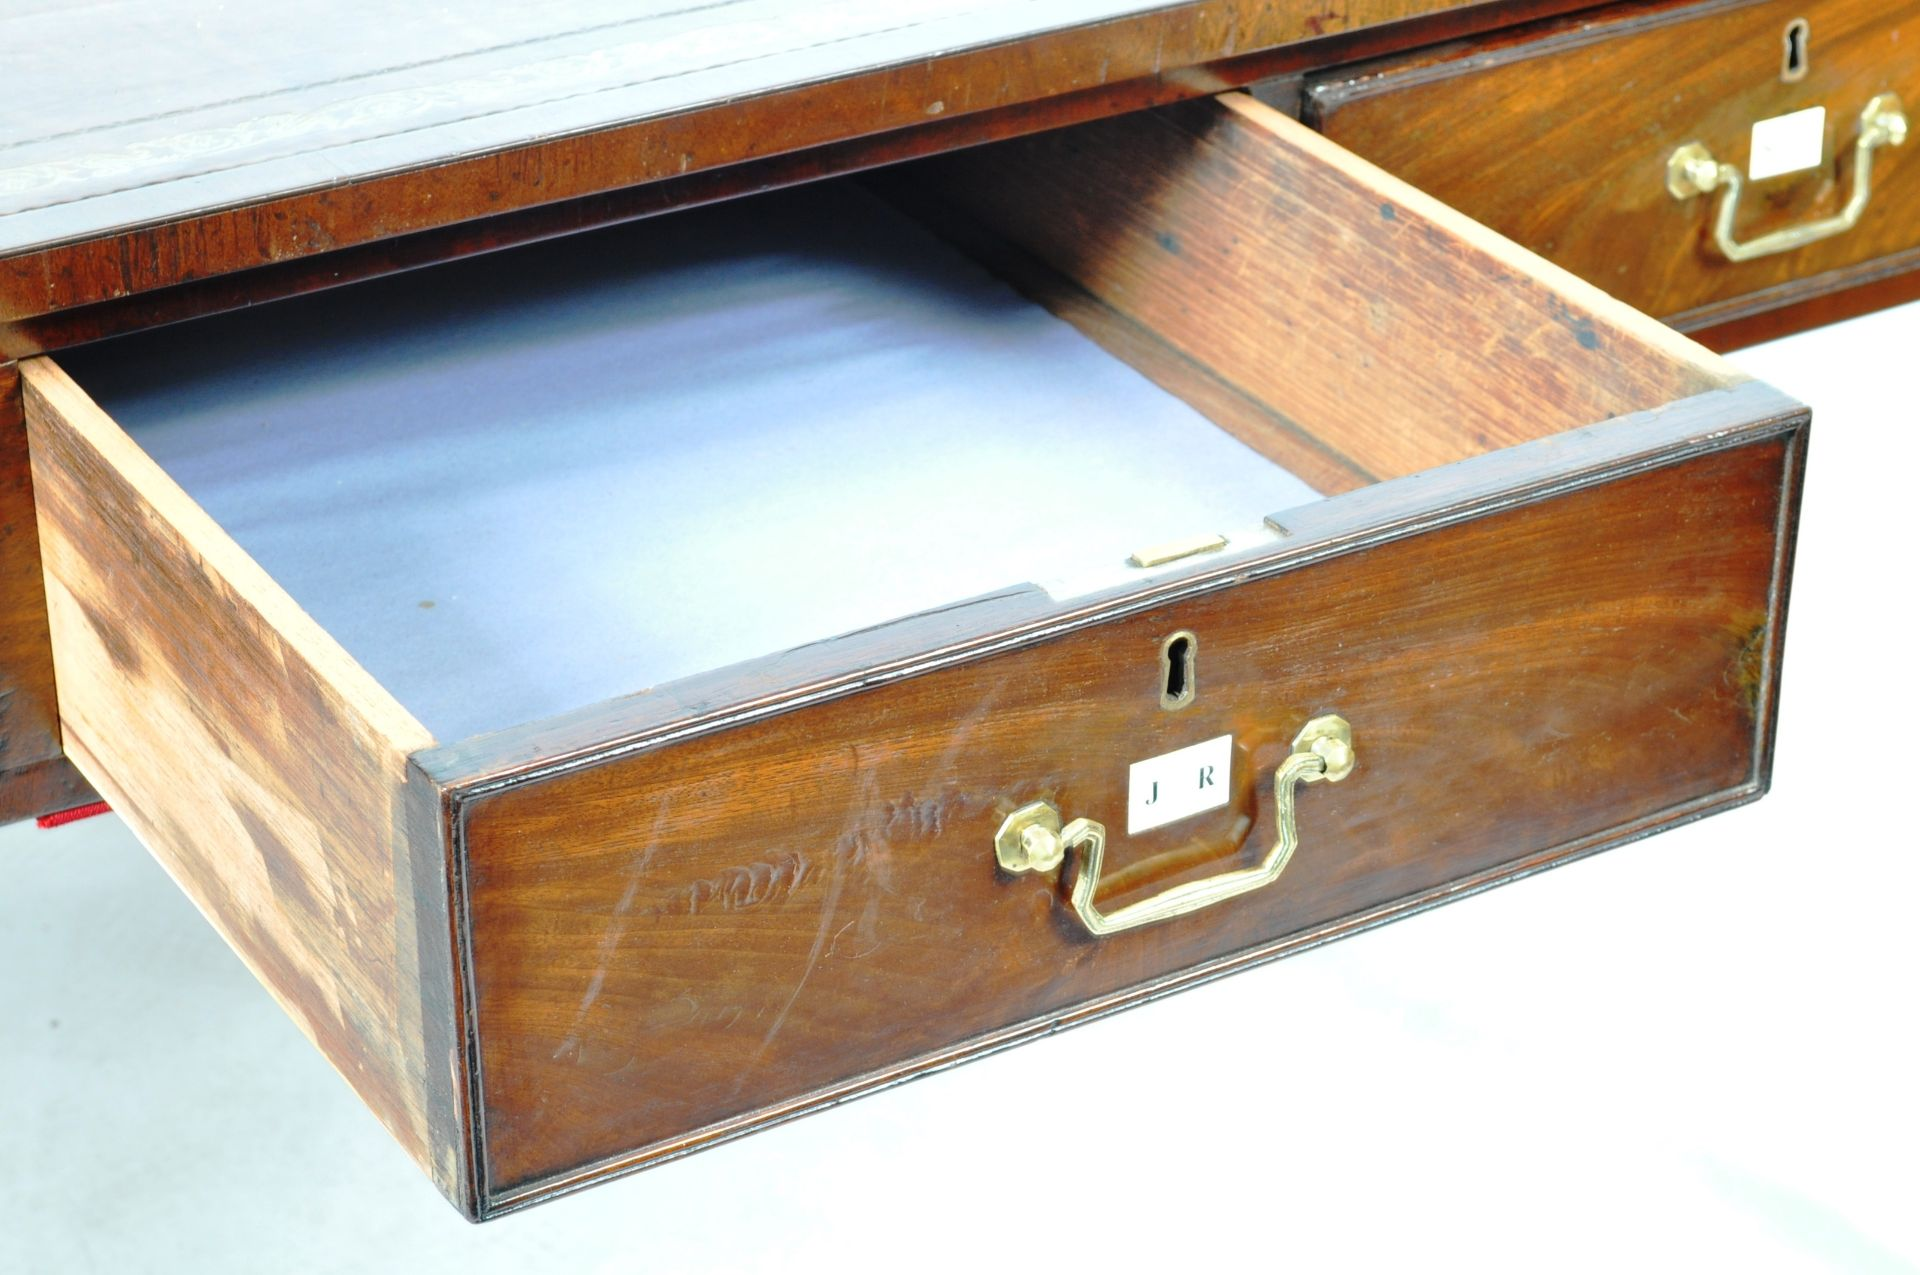 ANTIQUE 19TH CENTURY GILLOWS MANNER PARTNERS DESK LIBRARY TABLE - Image 6 of 9